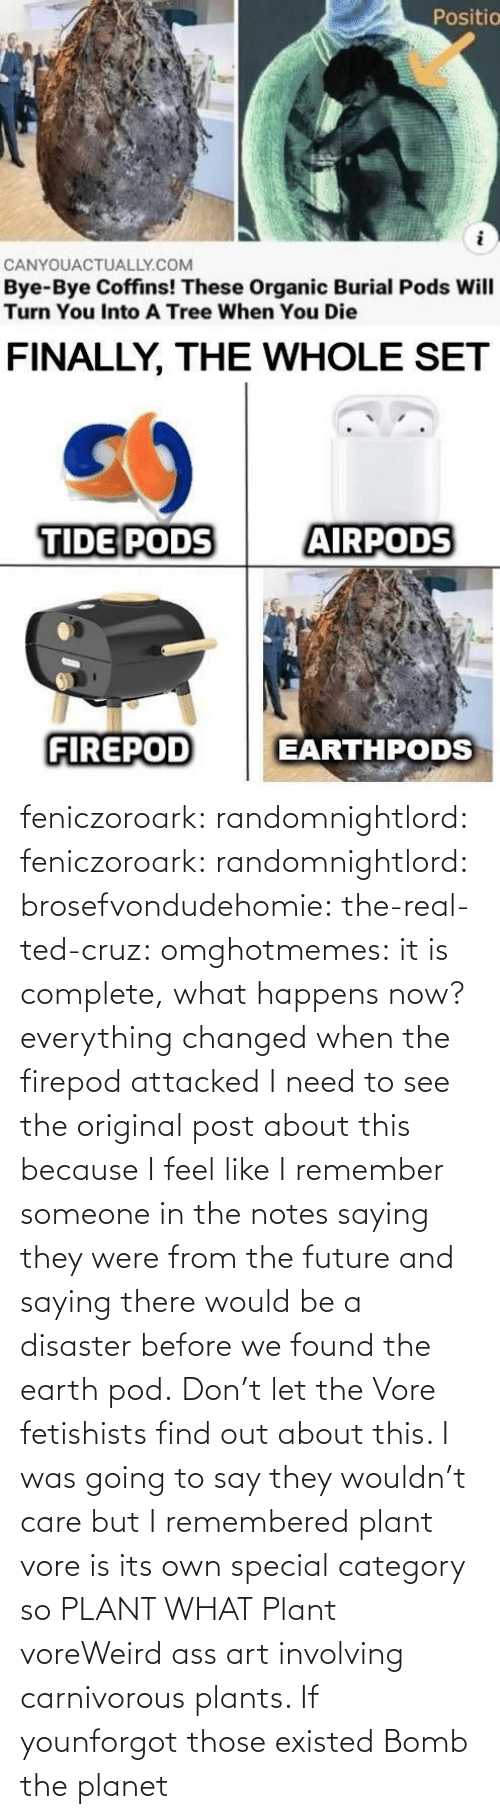 ass: feniczoroark:  randomnightlord:  feniczoroark:  randomnightlord:  brosefvondudehomie: the-real-ted-cruz:  omghotmemes: it is complete, what happens now? everything changed when the firepod attacked    I need to see the original post about this because I feel like I remember someone in the notes saying they were from the future and saying there would be a disaster before we found the earth pod.    Don't let the Vore fetishists find out about this.    I was going to say they wouldn't care but I remembered plant vore is its own special category so   PLANT WHAT   Plant voreWeird ass art involving carnivorous plants. If younforgot those existed   Bomb the planet